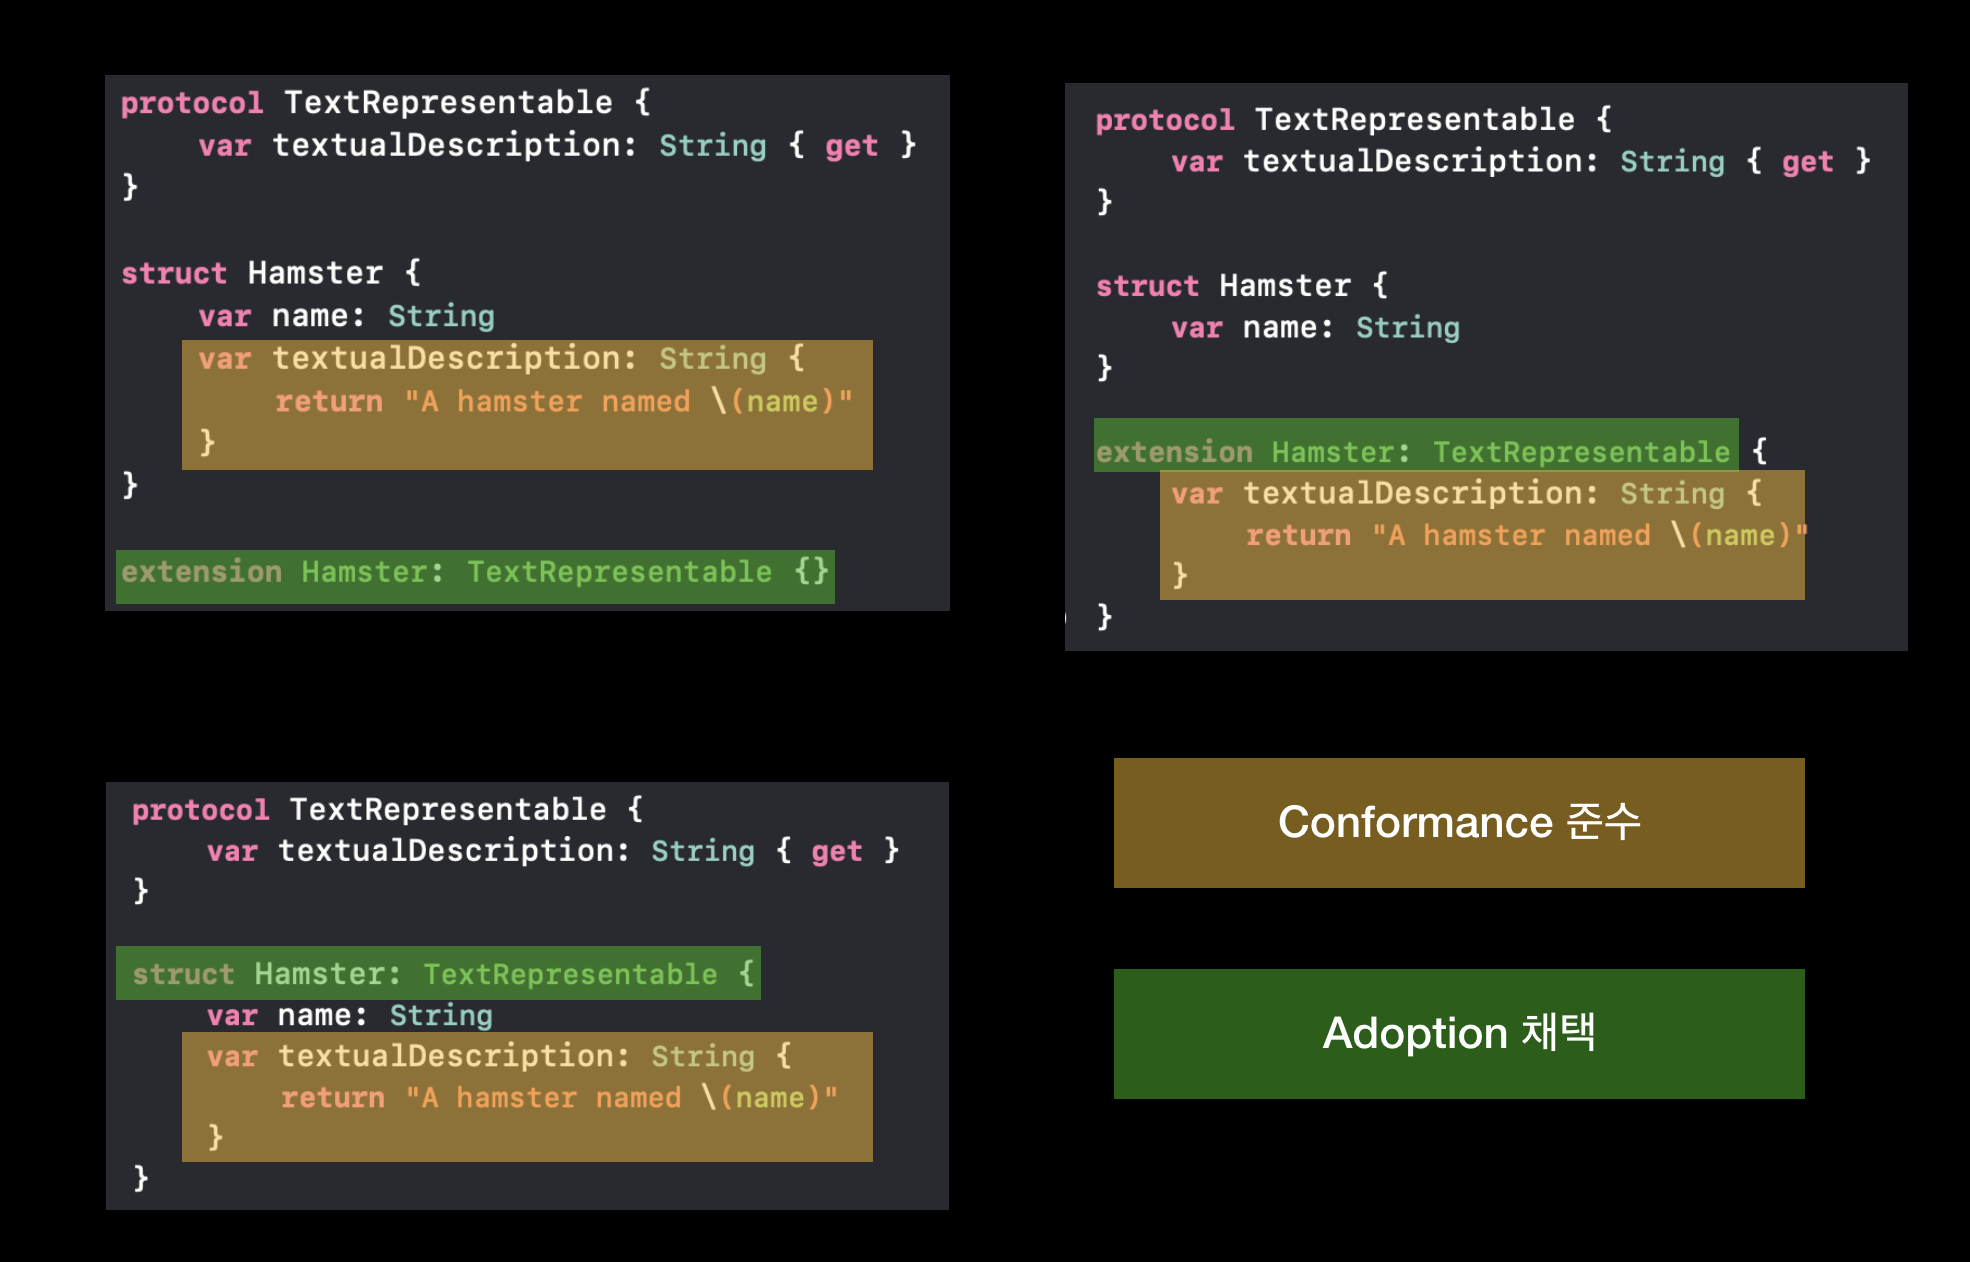 Difference between Conformance and Adoption in Swift Protocol